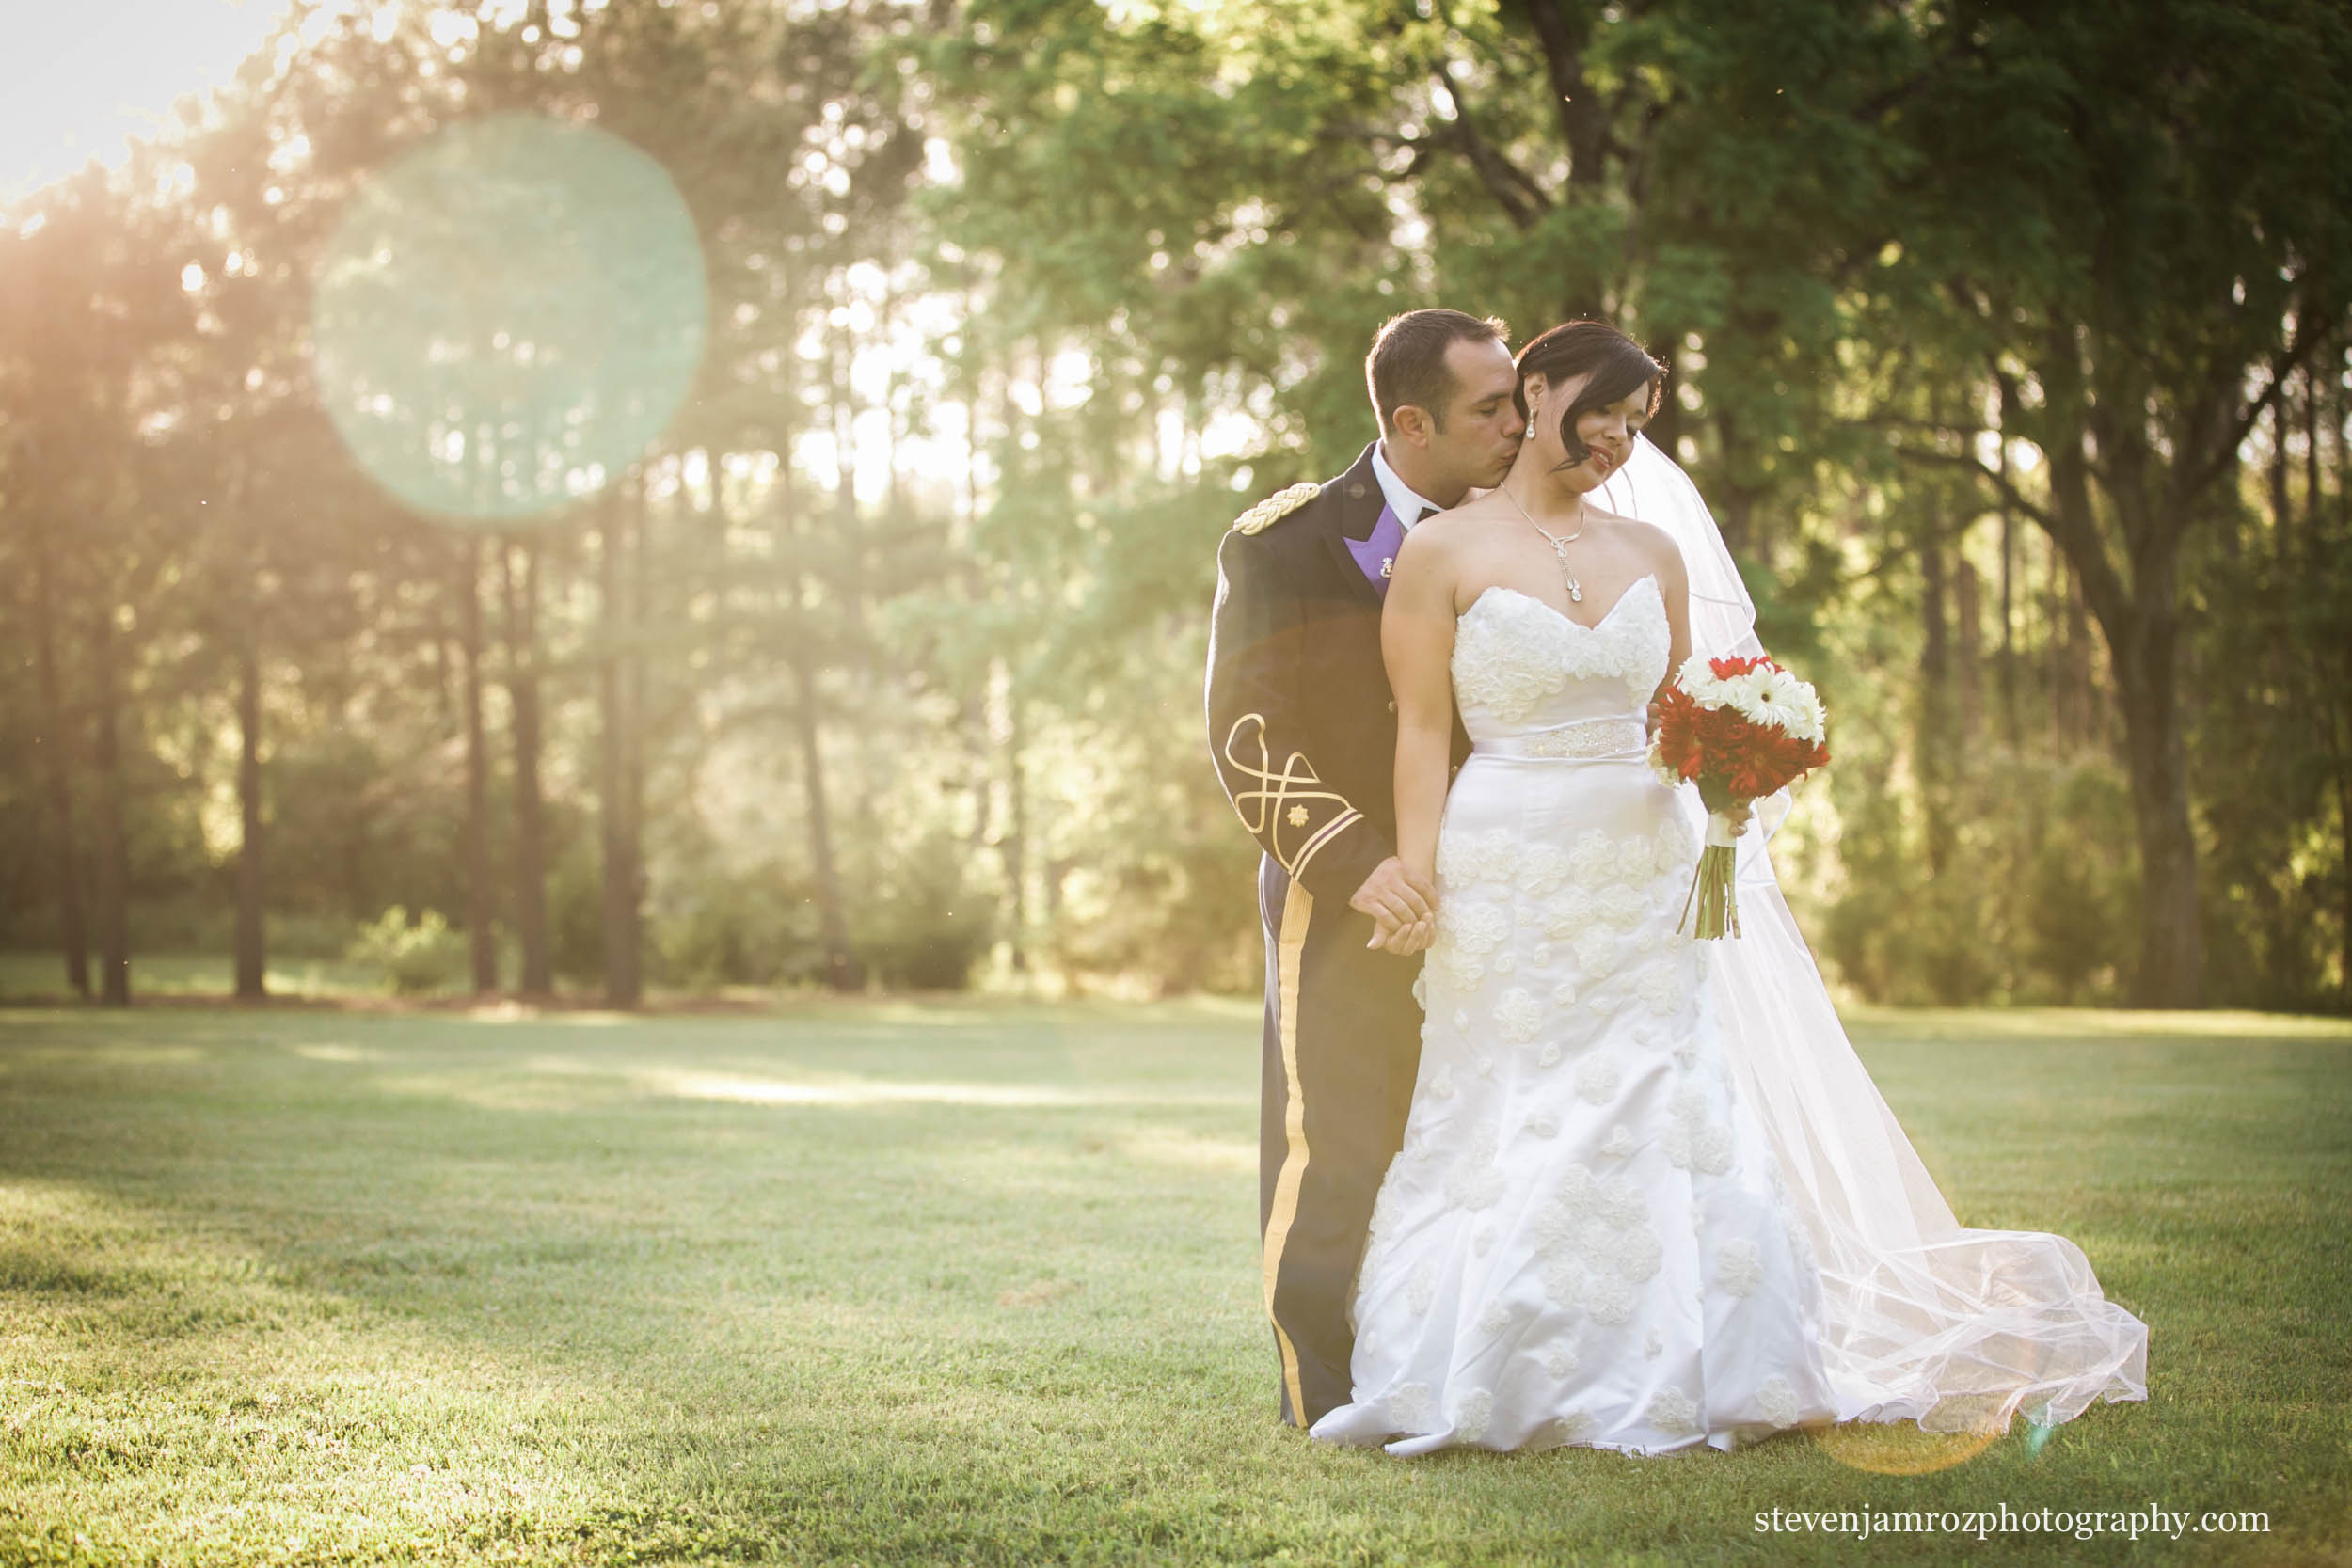 afternoon-bride-groom-wedding-nc-steven-jamroz-photography-0210.jpg